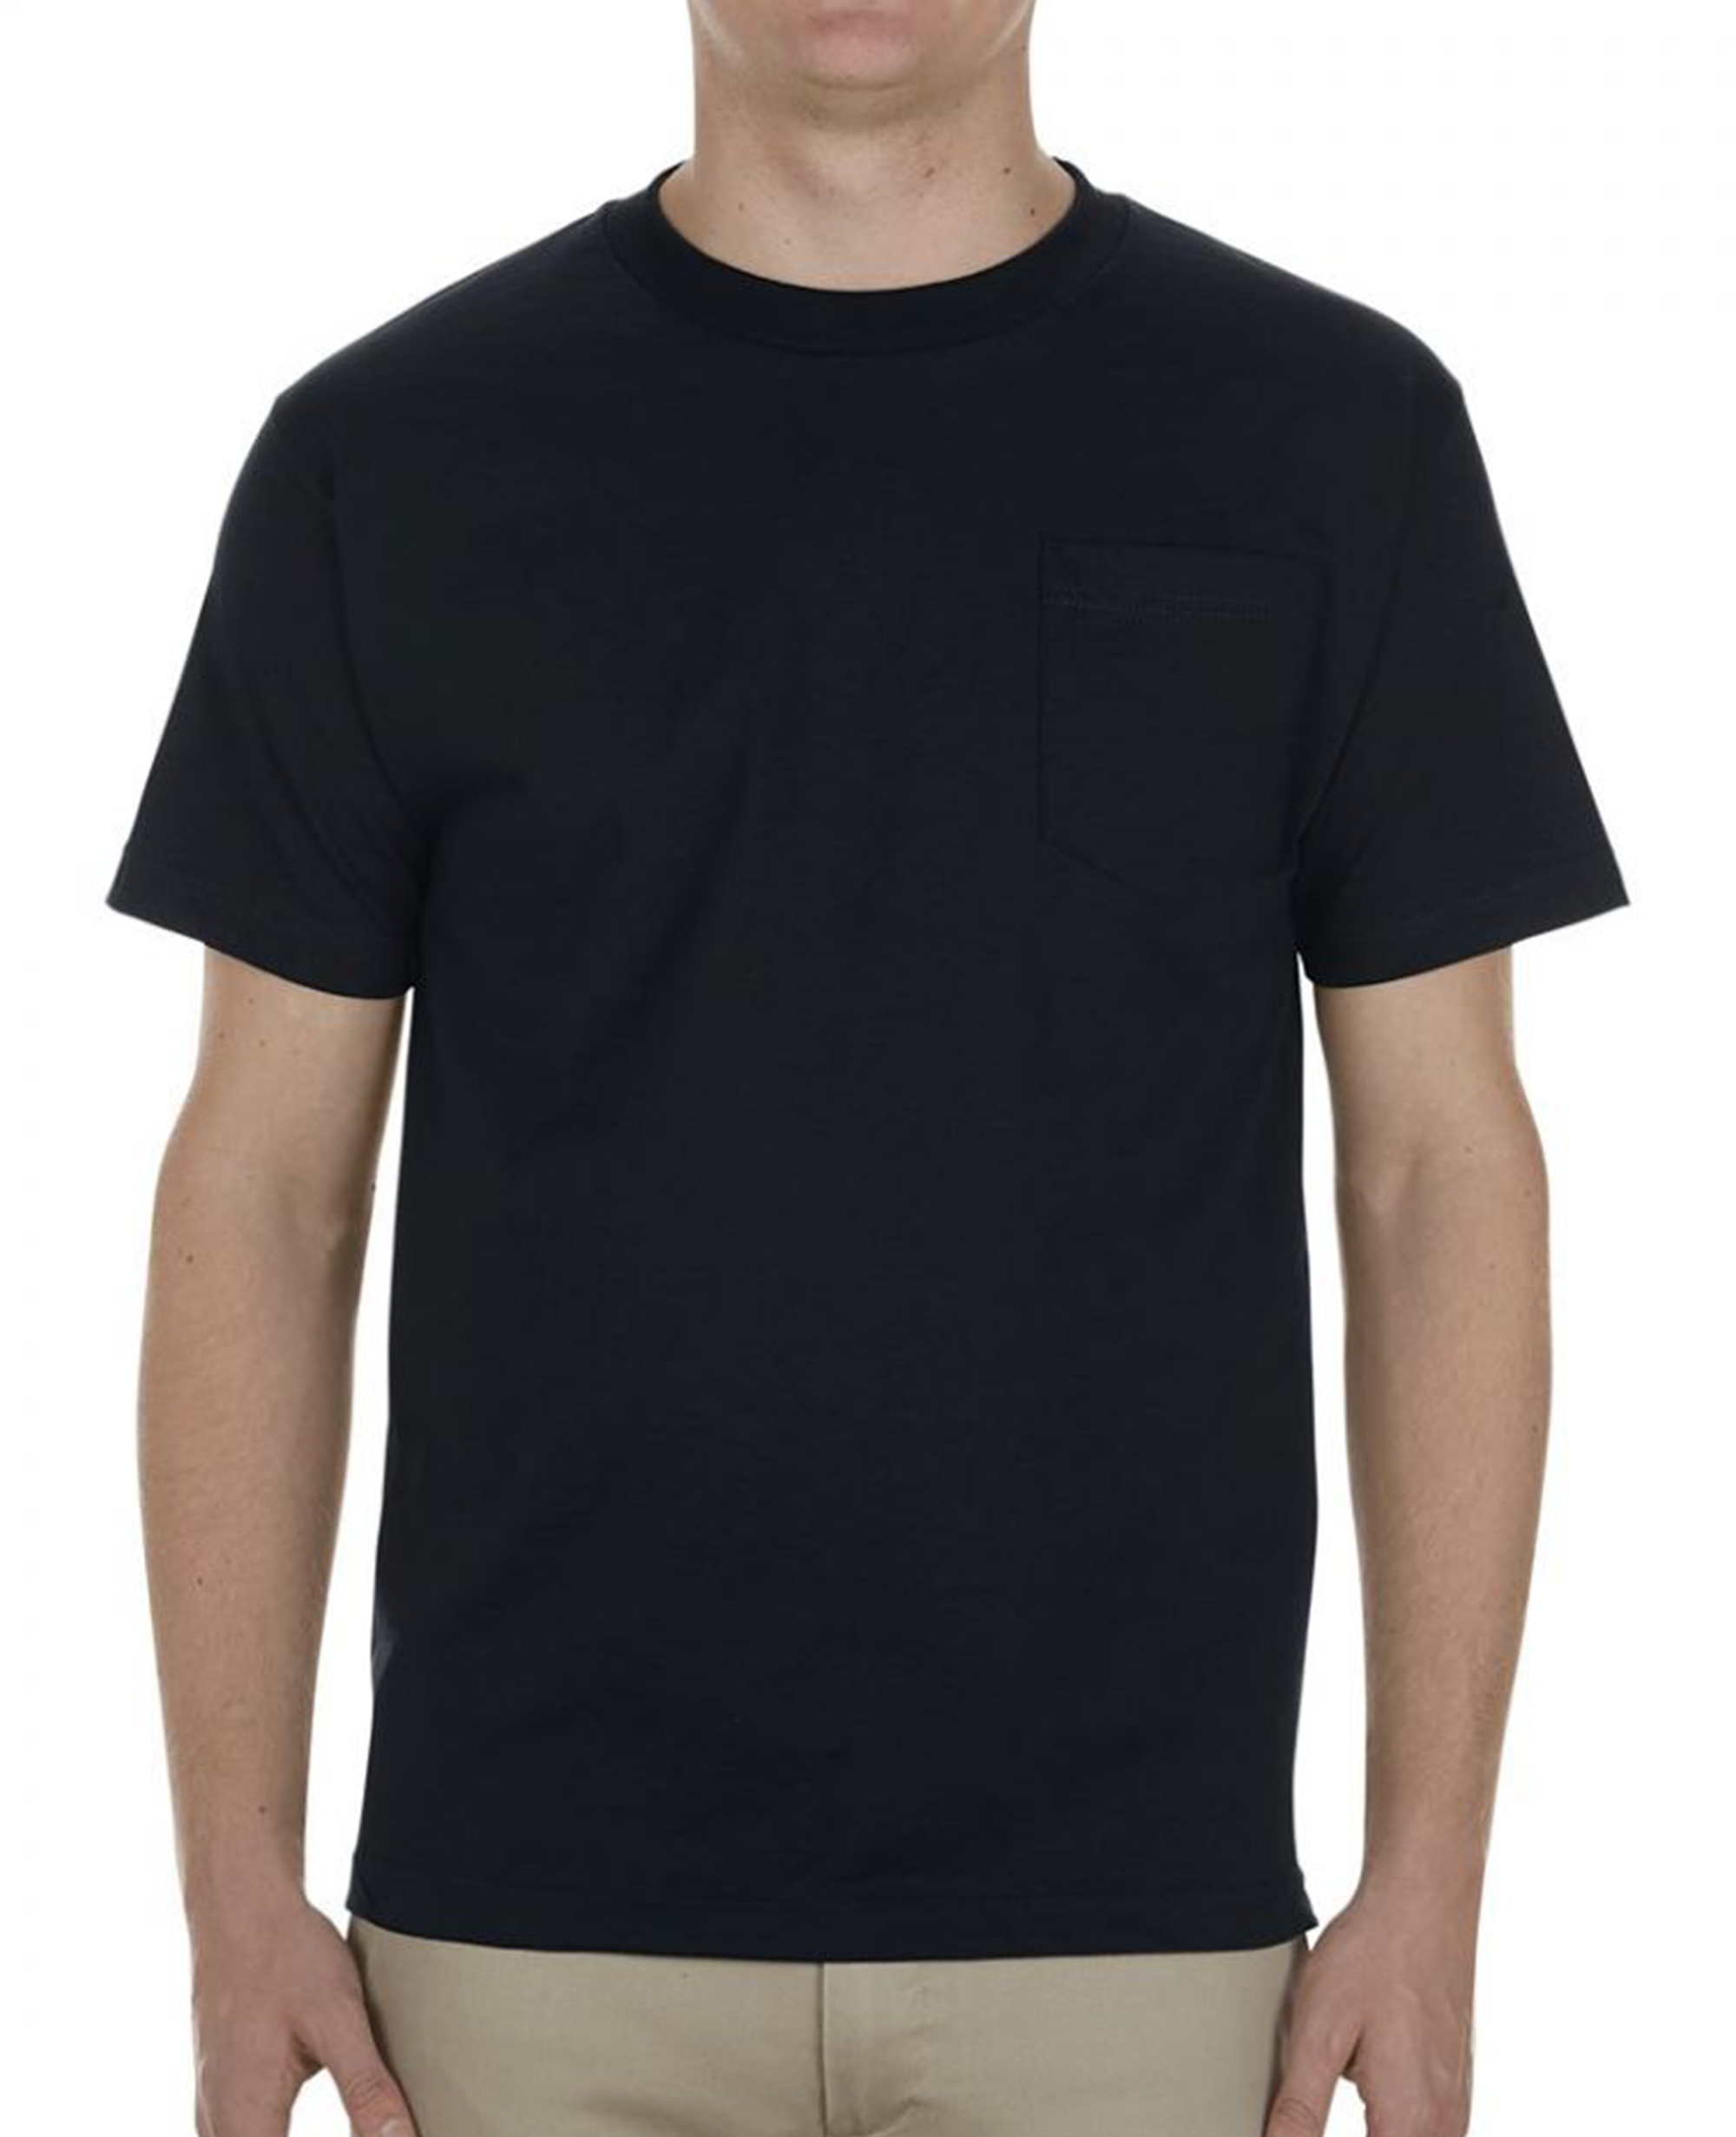 Pocket T-shirt in Black - T-Shirts - Alstyle (AAA) - BRANMA